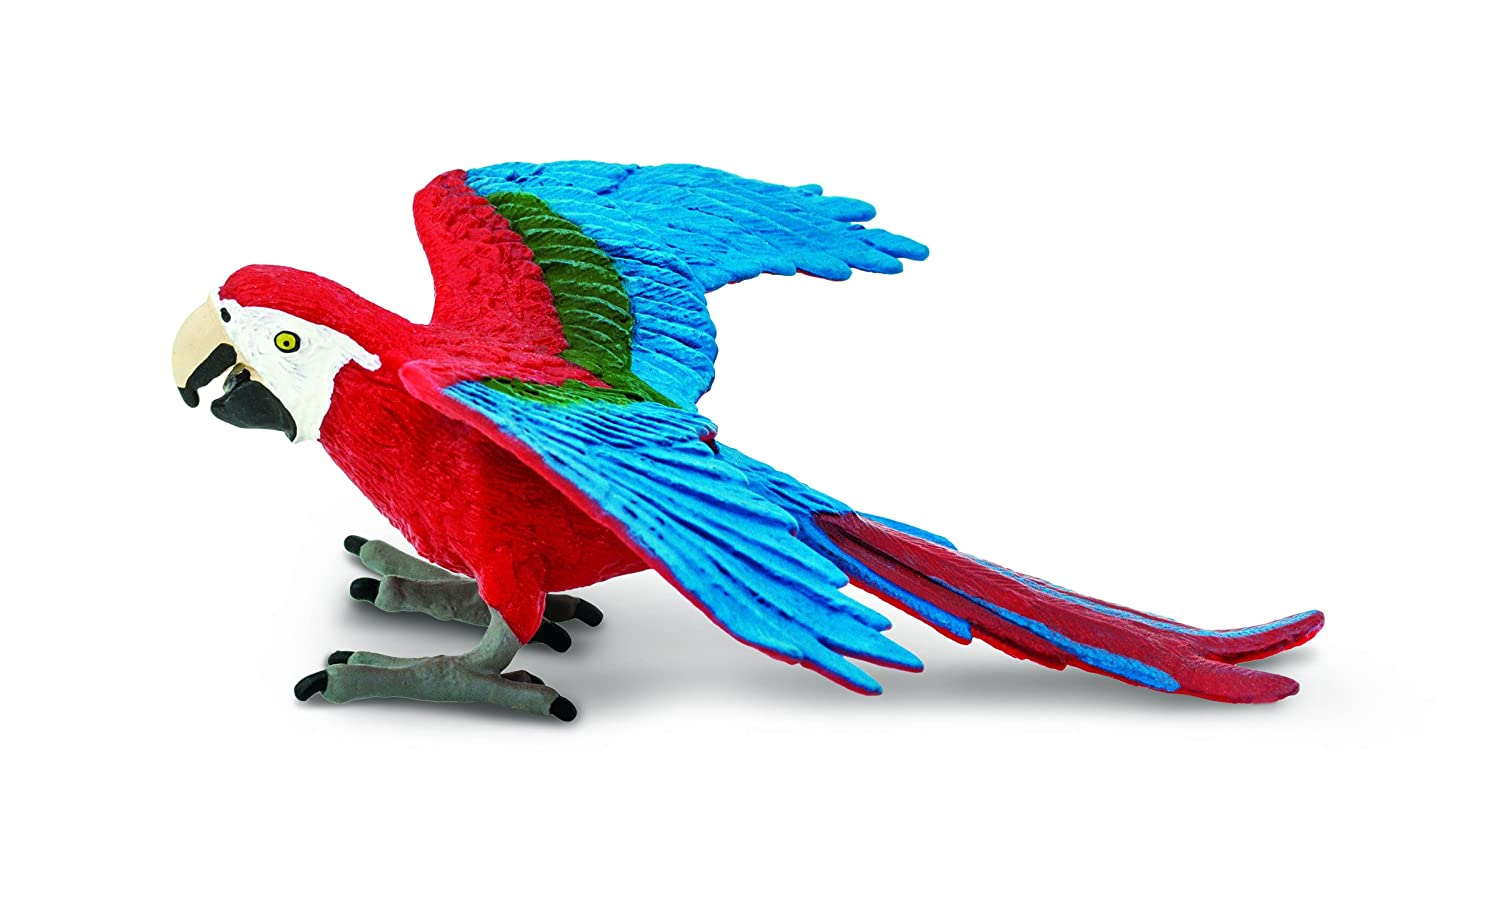 For Ages 3 and Up 263929 Quality Construction from Safe and BPA Free Materials Green-Winged Macaw Safari Ltd Wings of the World Realistic Hand Painted Toy Figurine Model